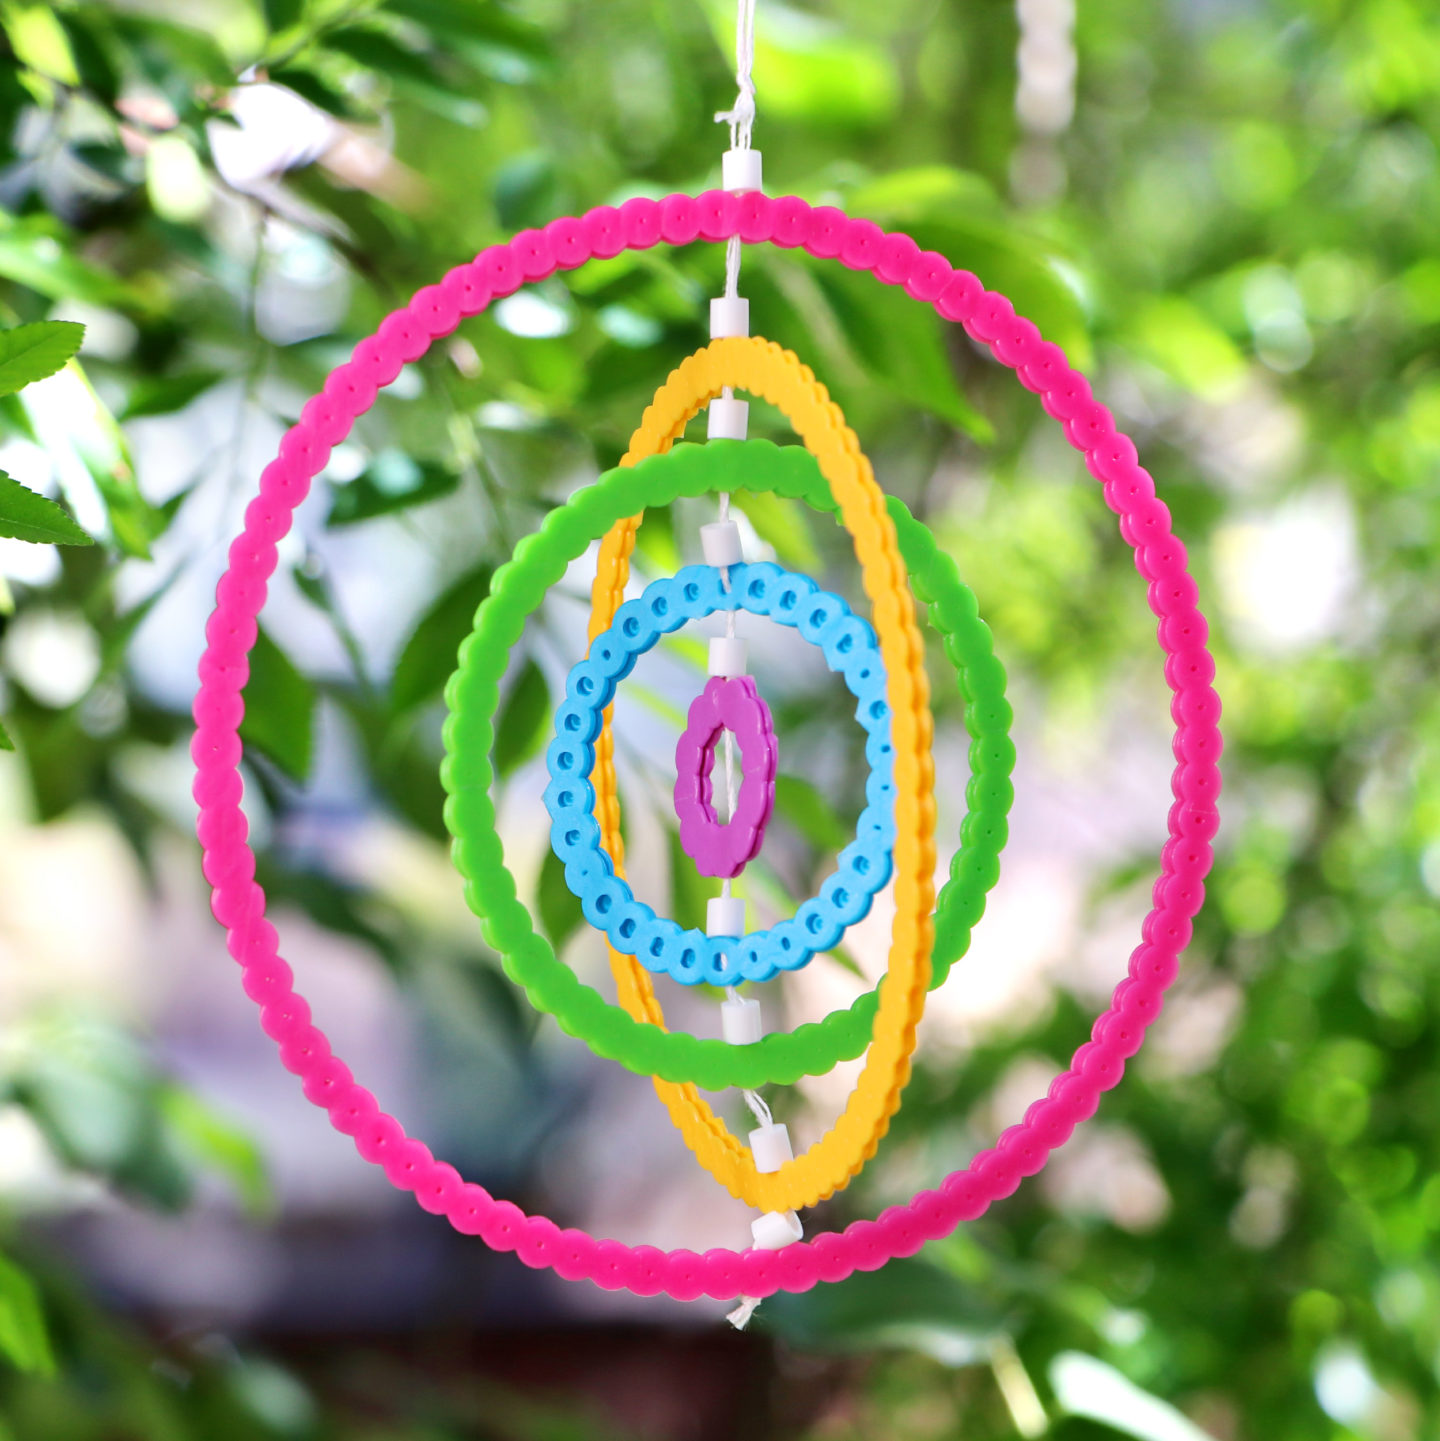 20 Ways To Spiff Up Your Backyard For Spring: DIY Perler Bead Rainbow Wind Spinners